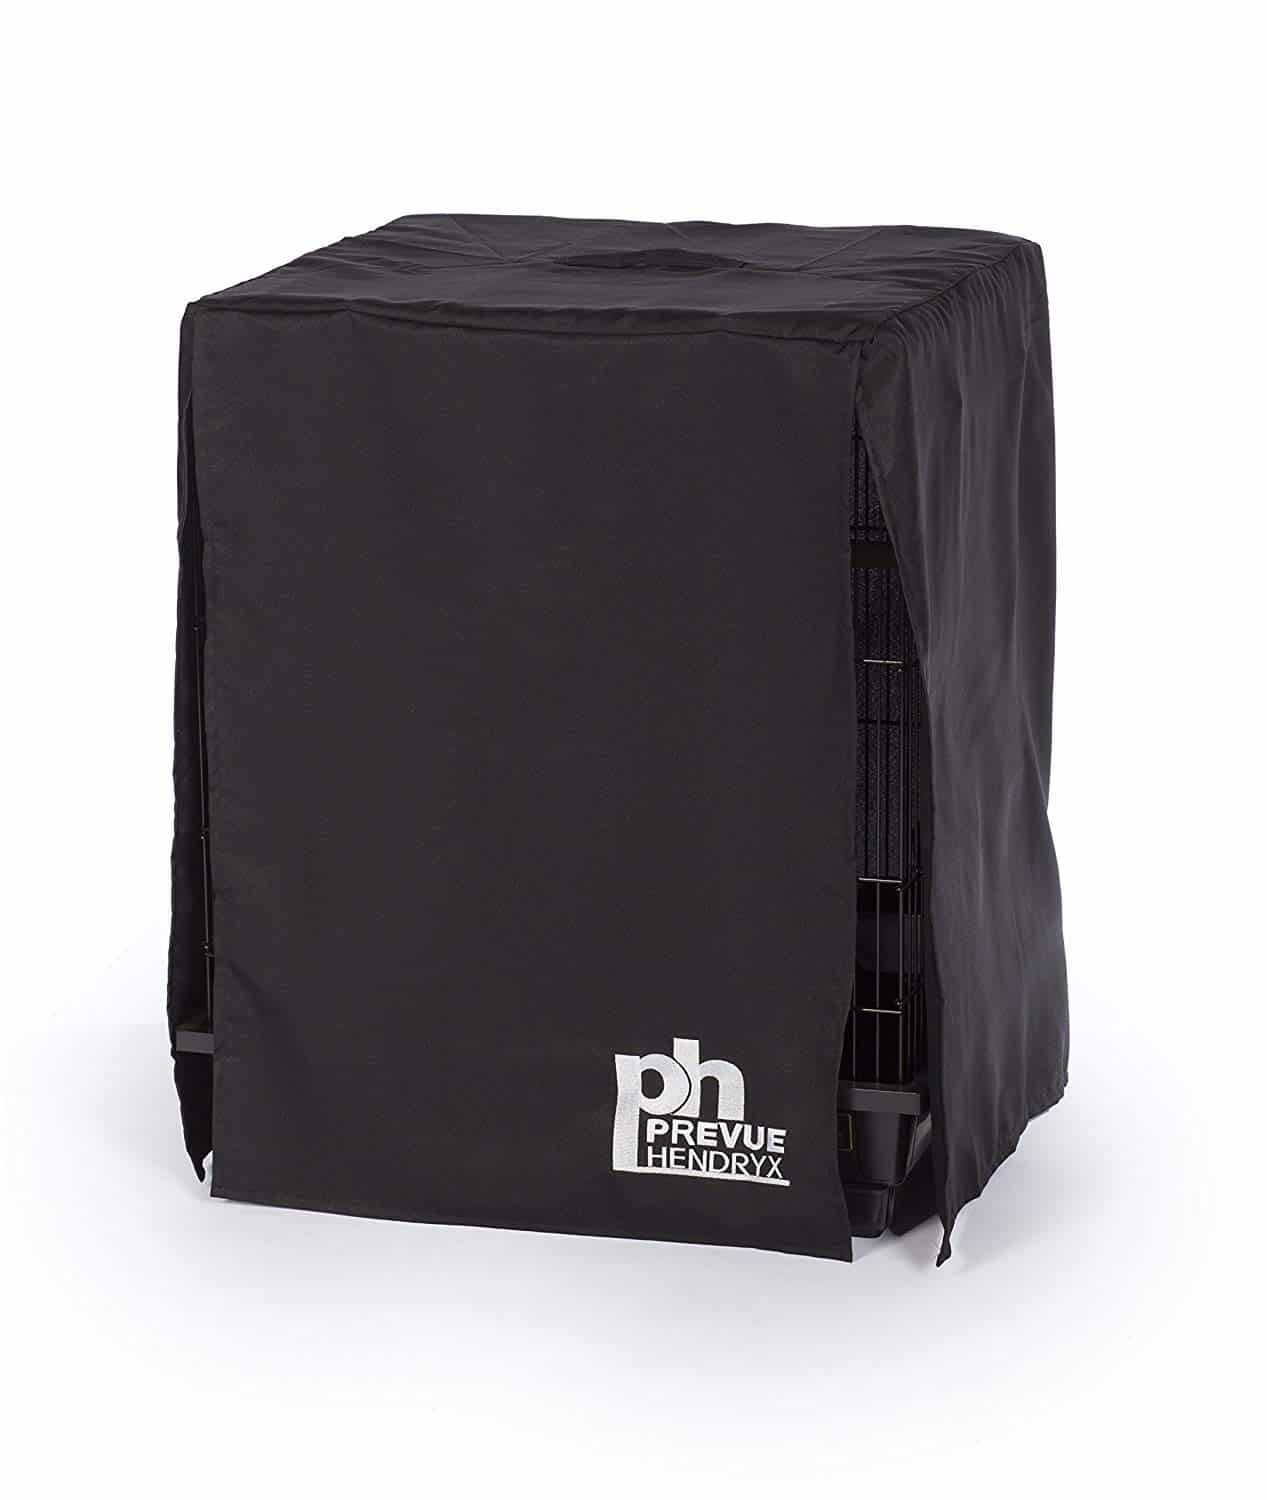 Prevue Hendryx Pet Products Universal Bird Cage Cover, Large Size